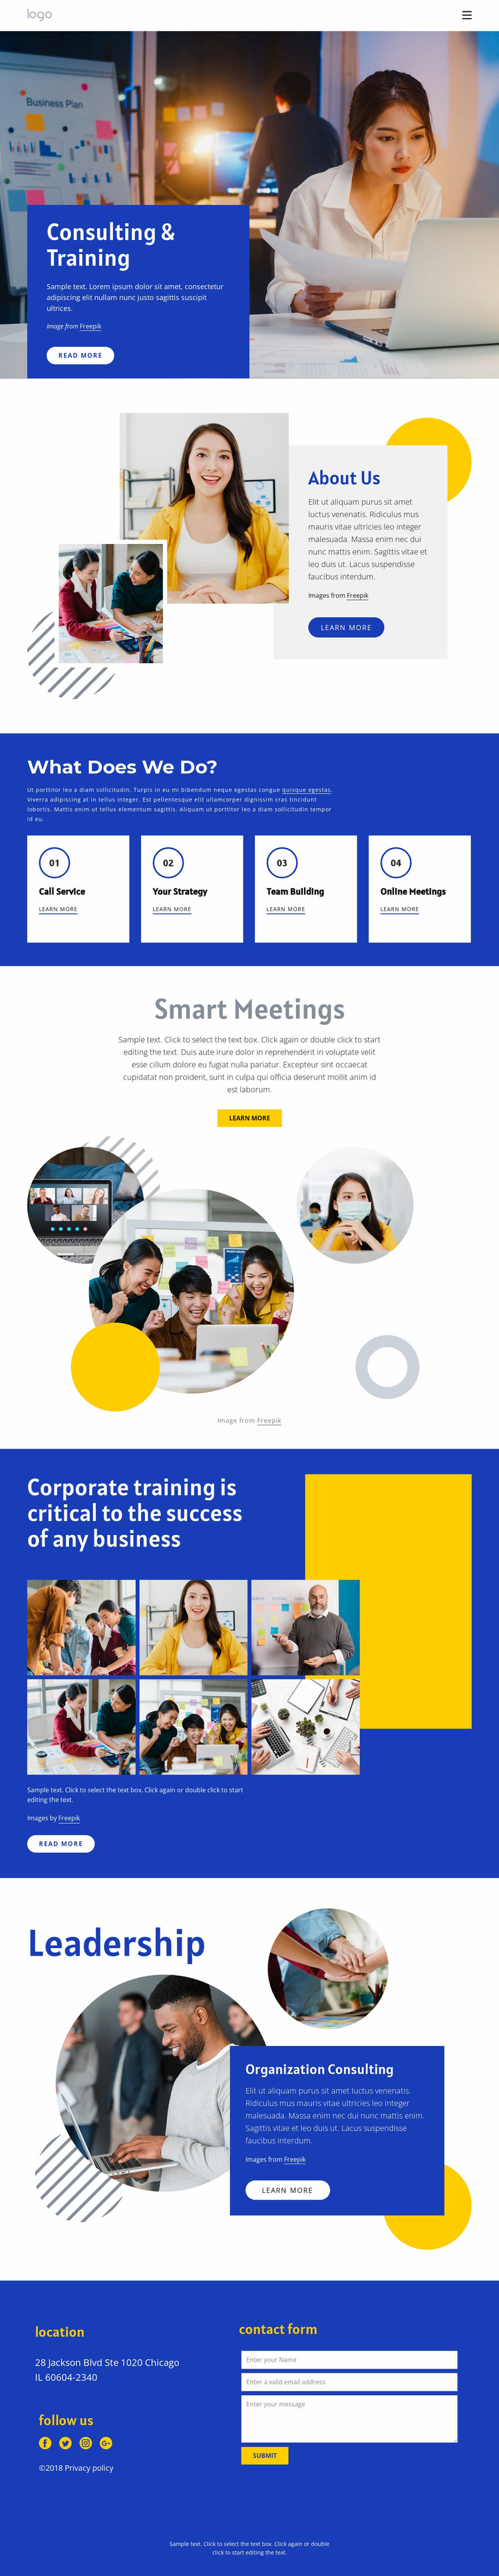 Consulting and training Website Design